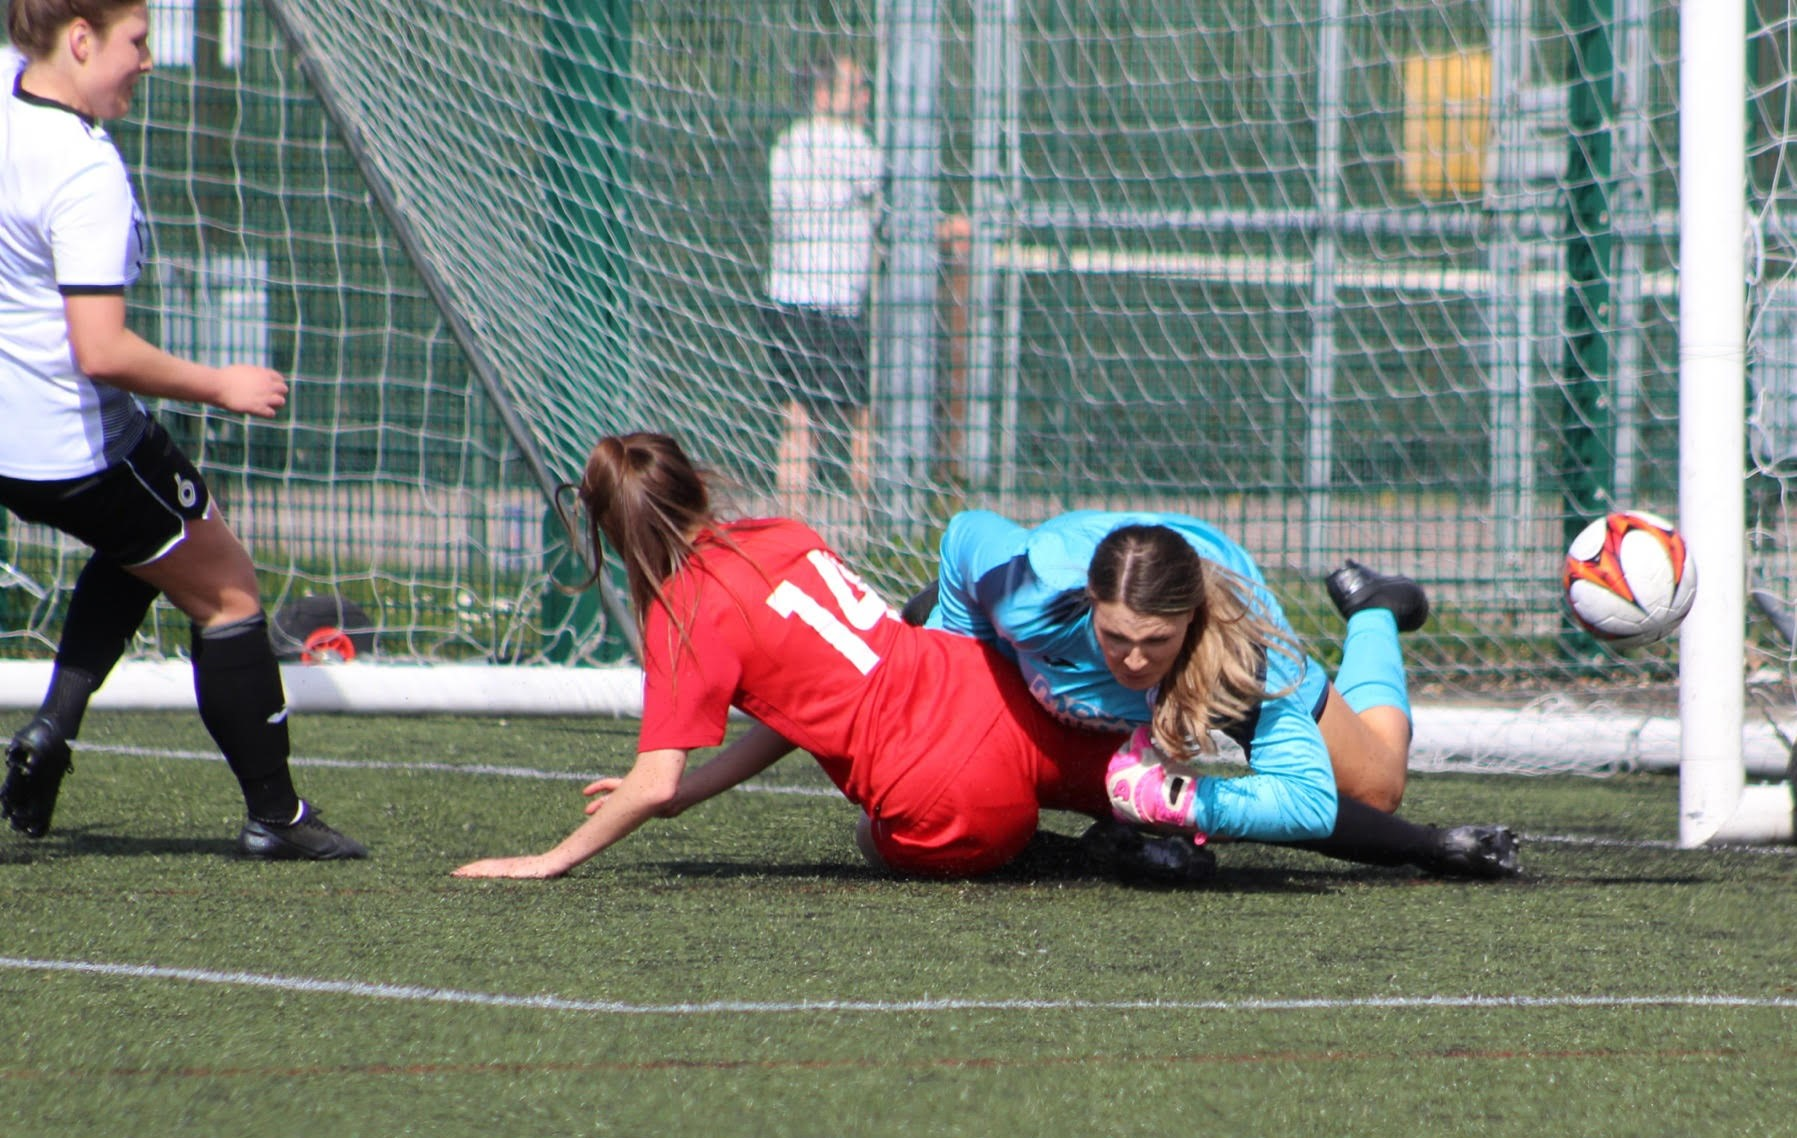 St Ives Town keeper, Kira markwell